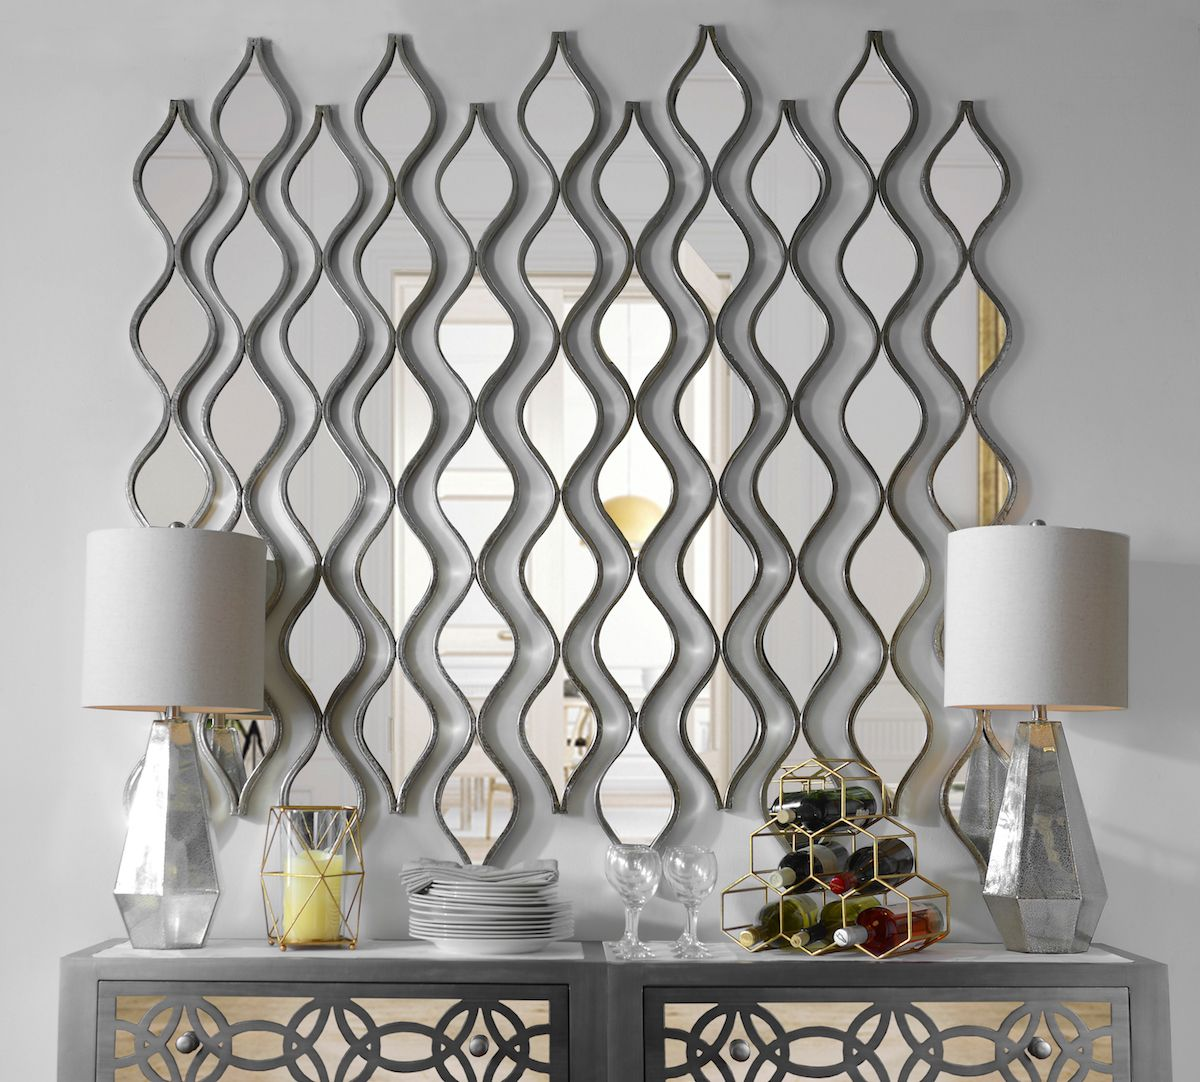 Decorative Wall Mirror Panels : Single silver teardrop panel mirror room